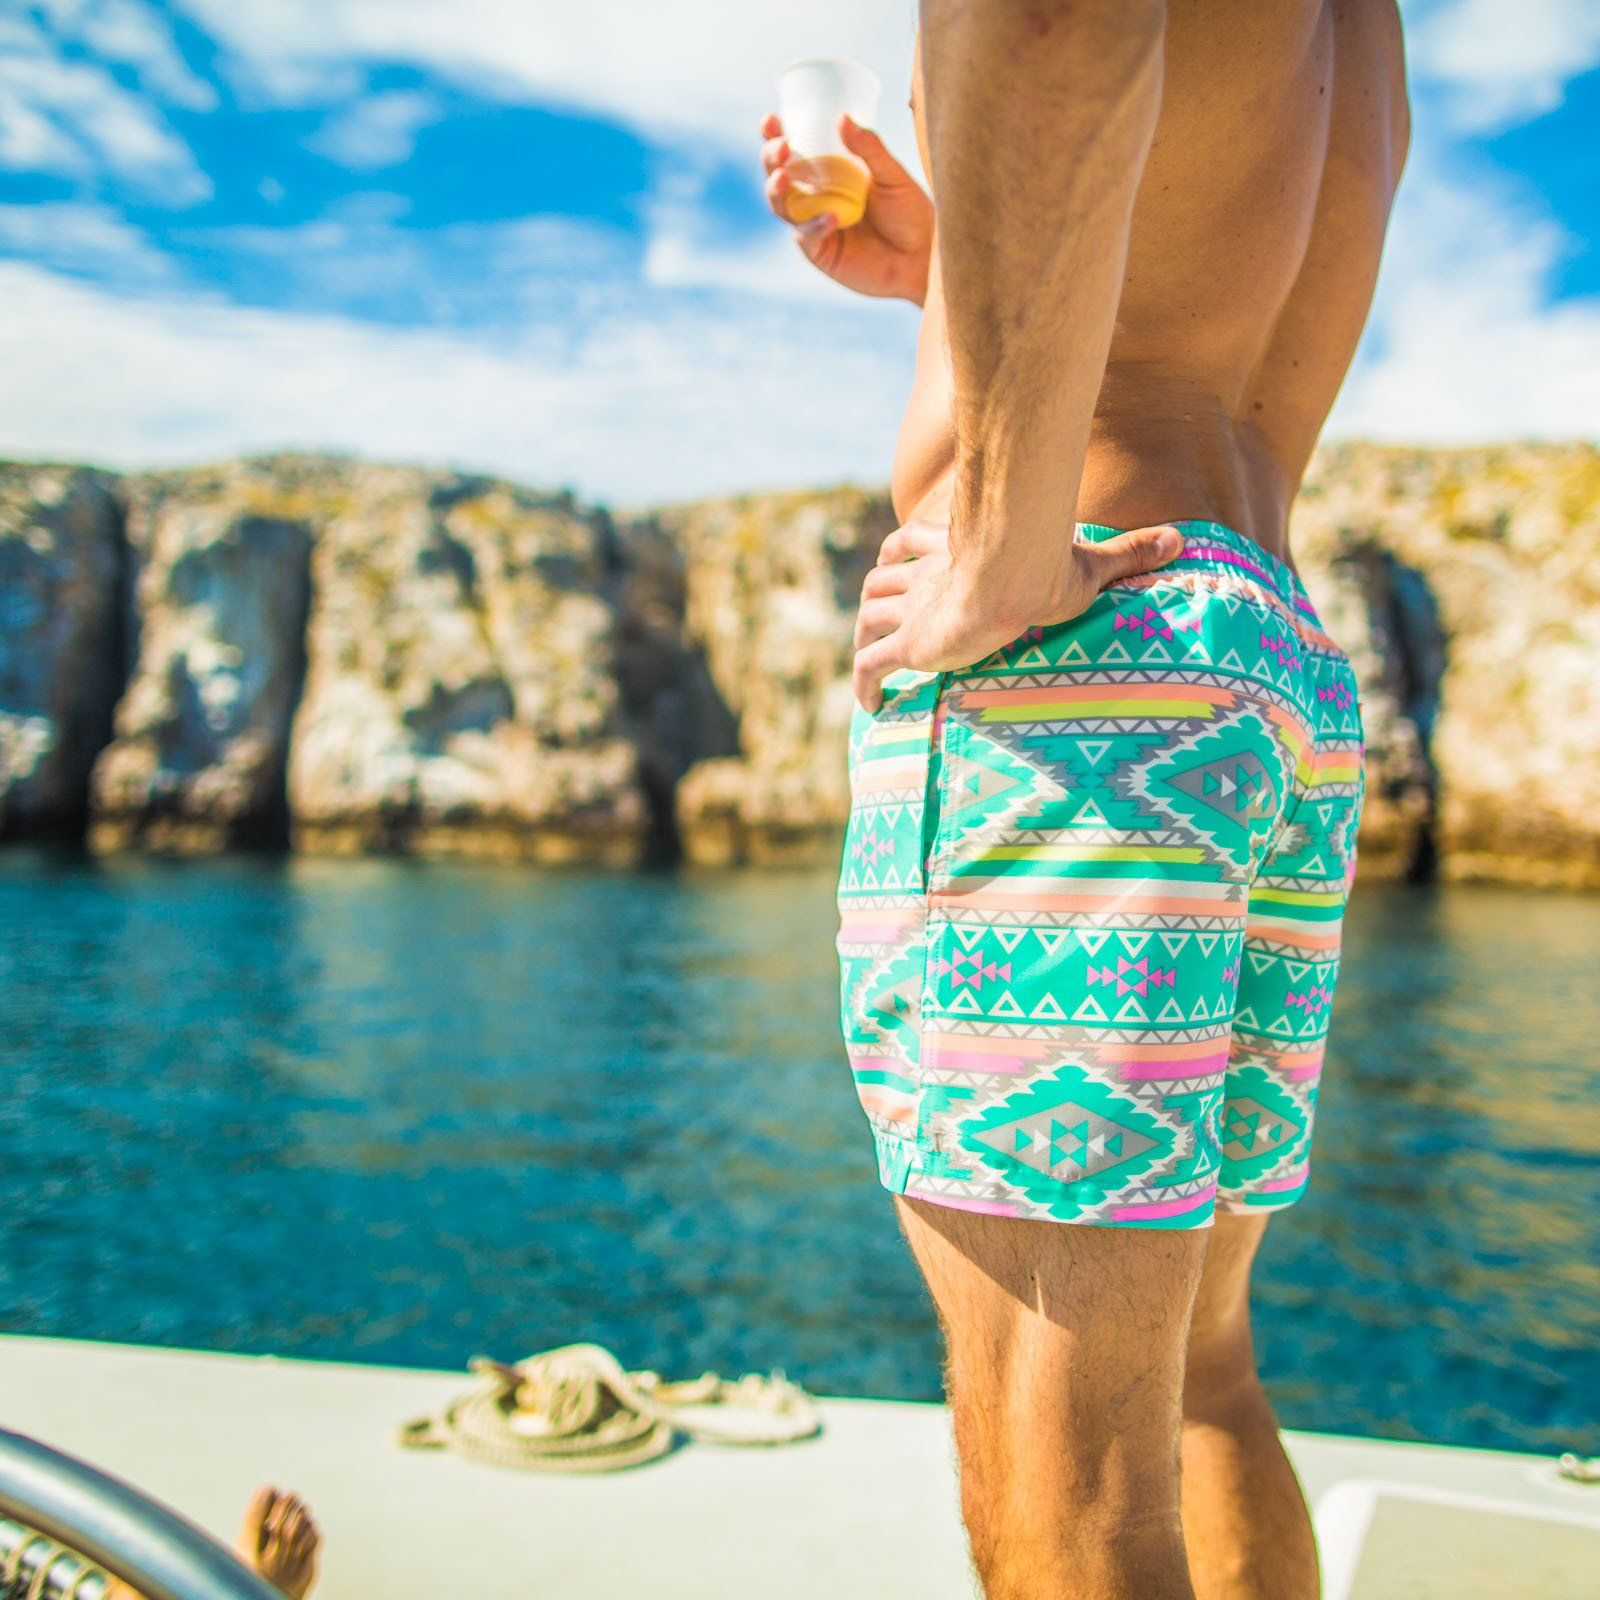 e236e834b9 Men's Swim Trunks | Swim Trunks for Men | Chubbies Swimming Trunks –  Chubbies Shorts